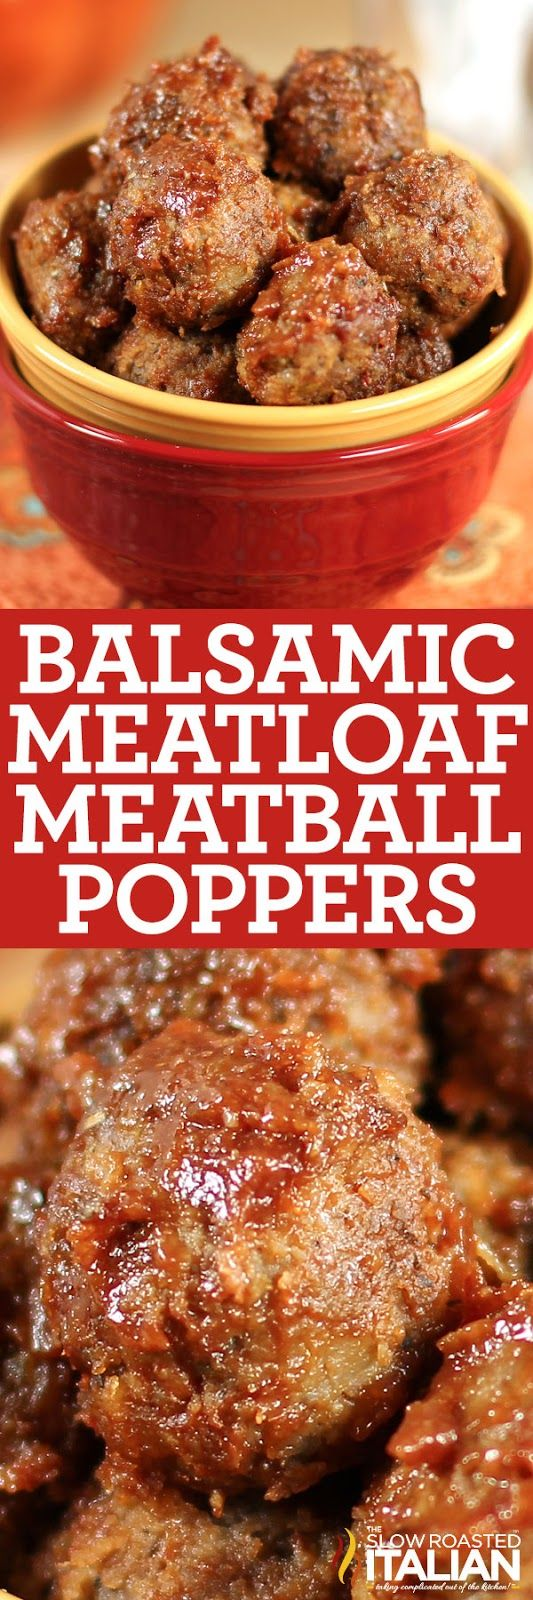 Balsamic Glazed Meatloaf Meatball Poppers are our number 1 all time best meatloaf in poppable form. Looking for the perfect poppable dinner? These meatball poppers surely fit the bill! Moist, flavorful and deliciously addictive.  Your kids will go crazy for these.  Great to freeze and reheat.